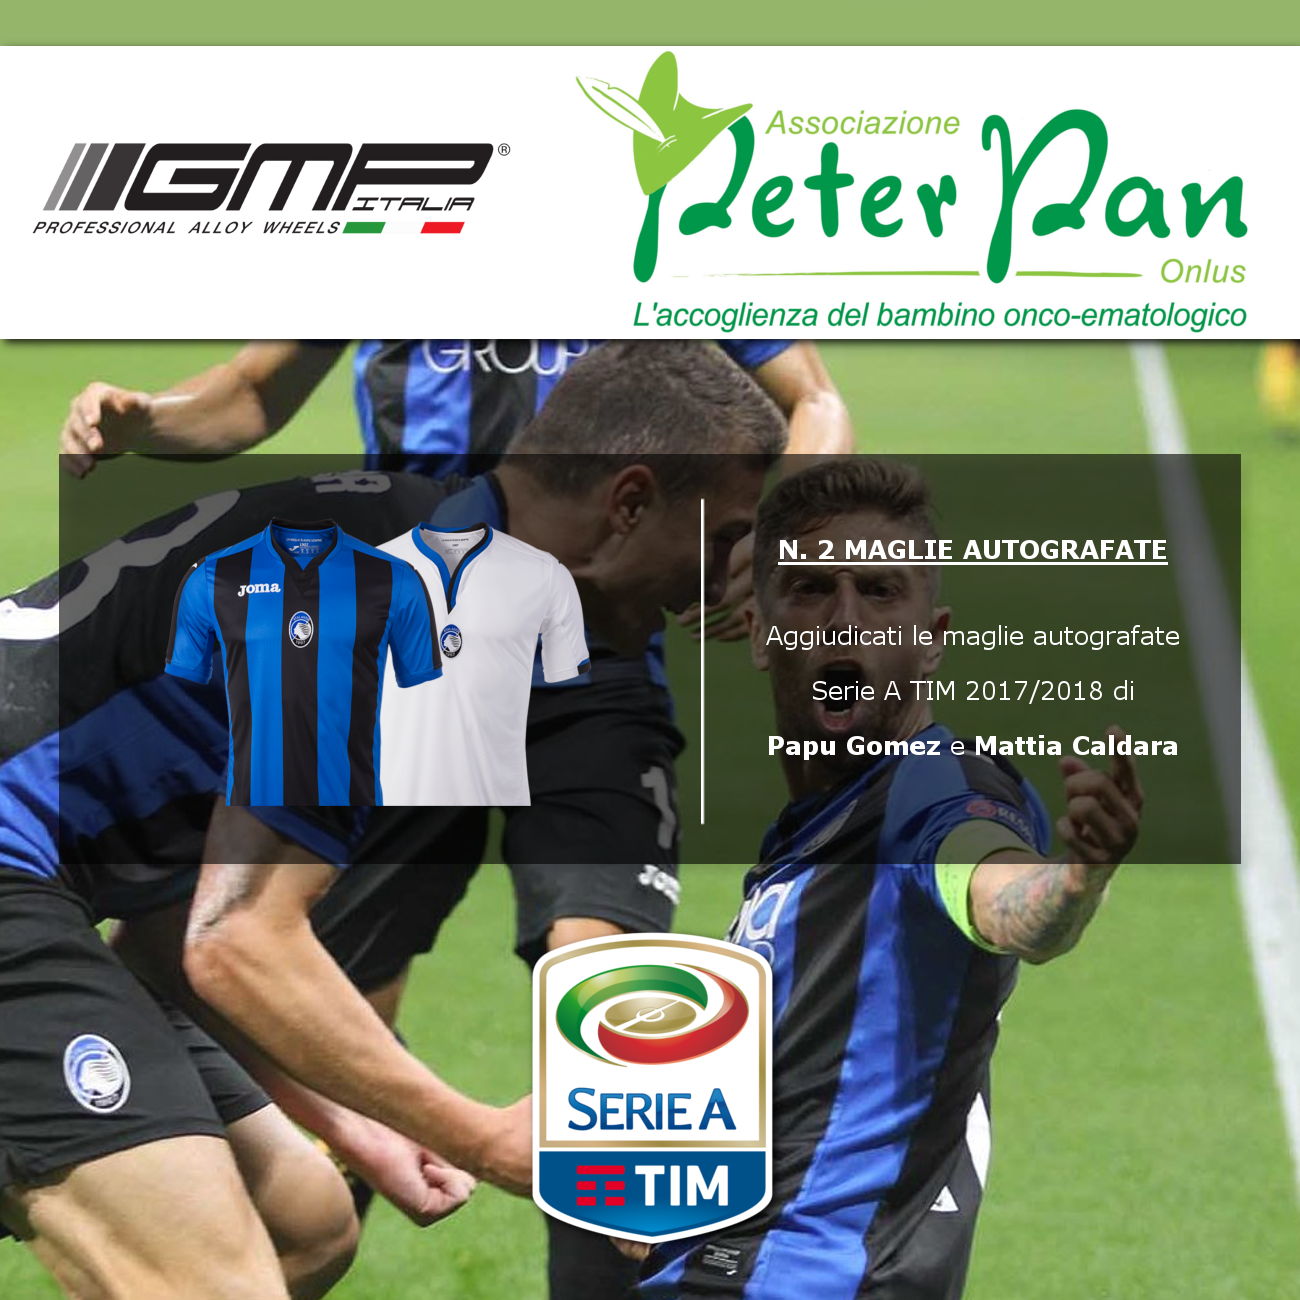 Get the signed kits of Papu Gomez and Mattia Caldara now!